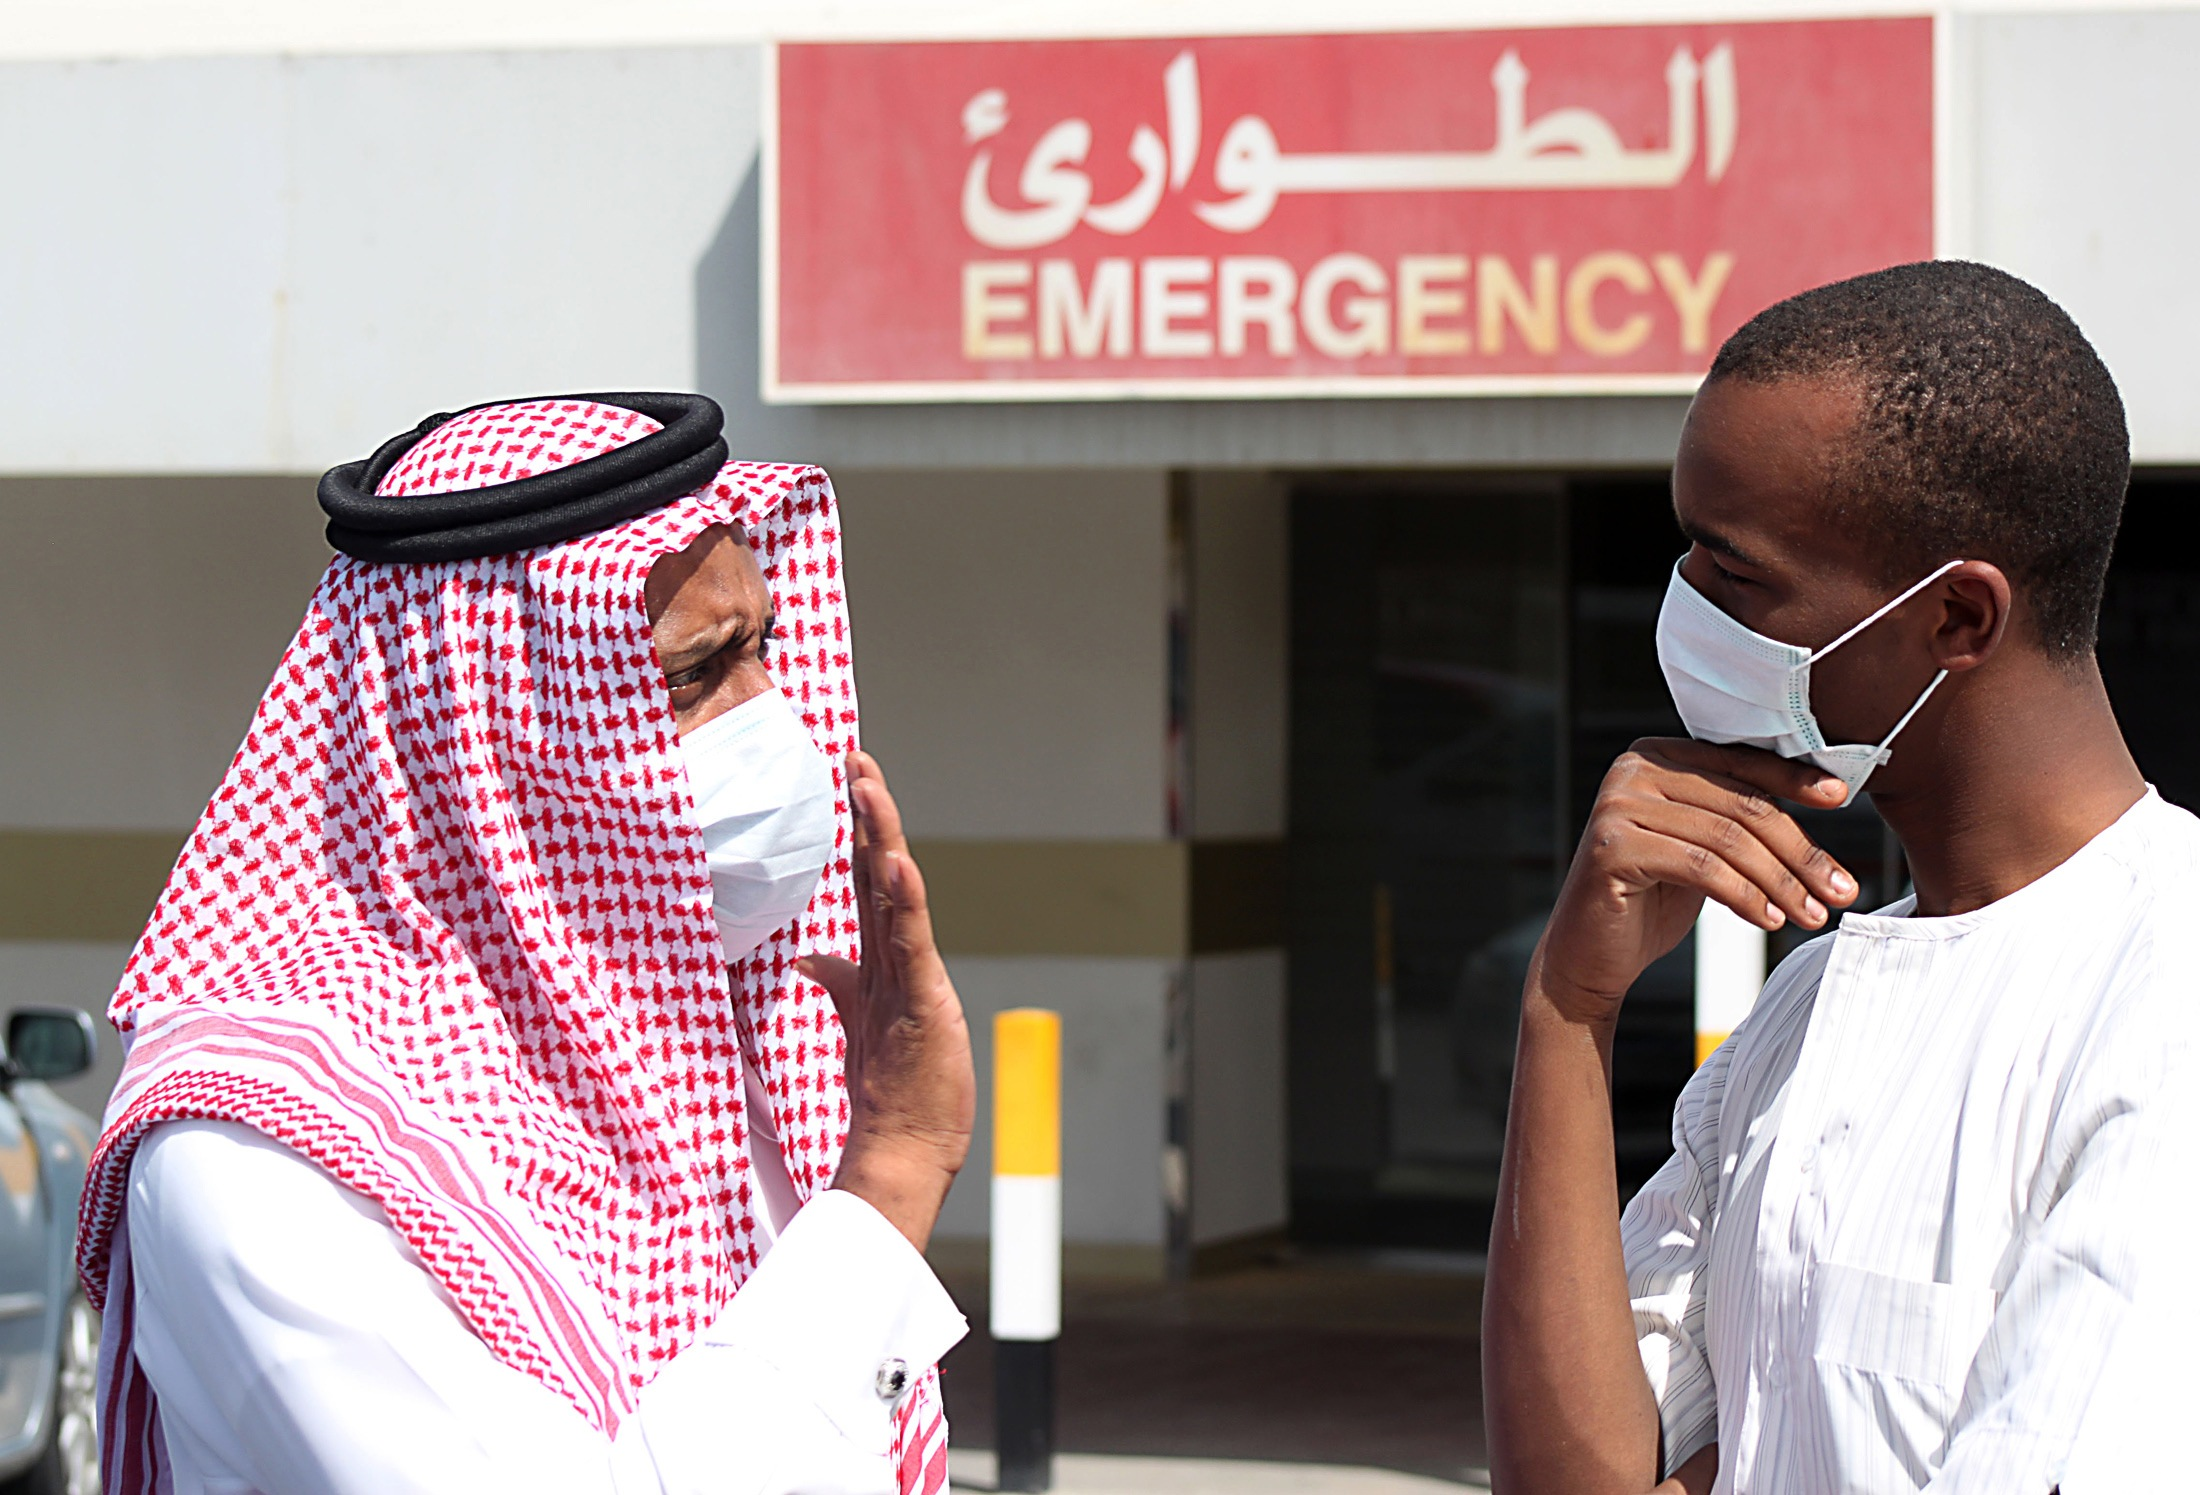 3 Pinoys infected with MERS-CoV in Saudi Arabia, says DFA